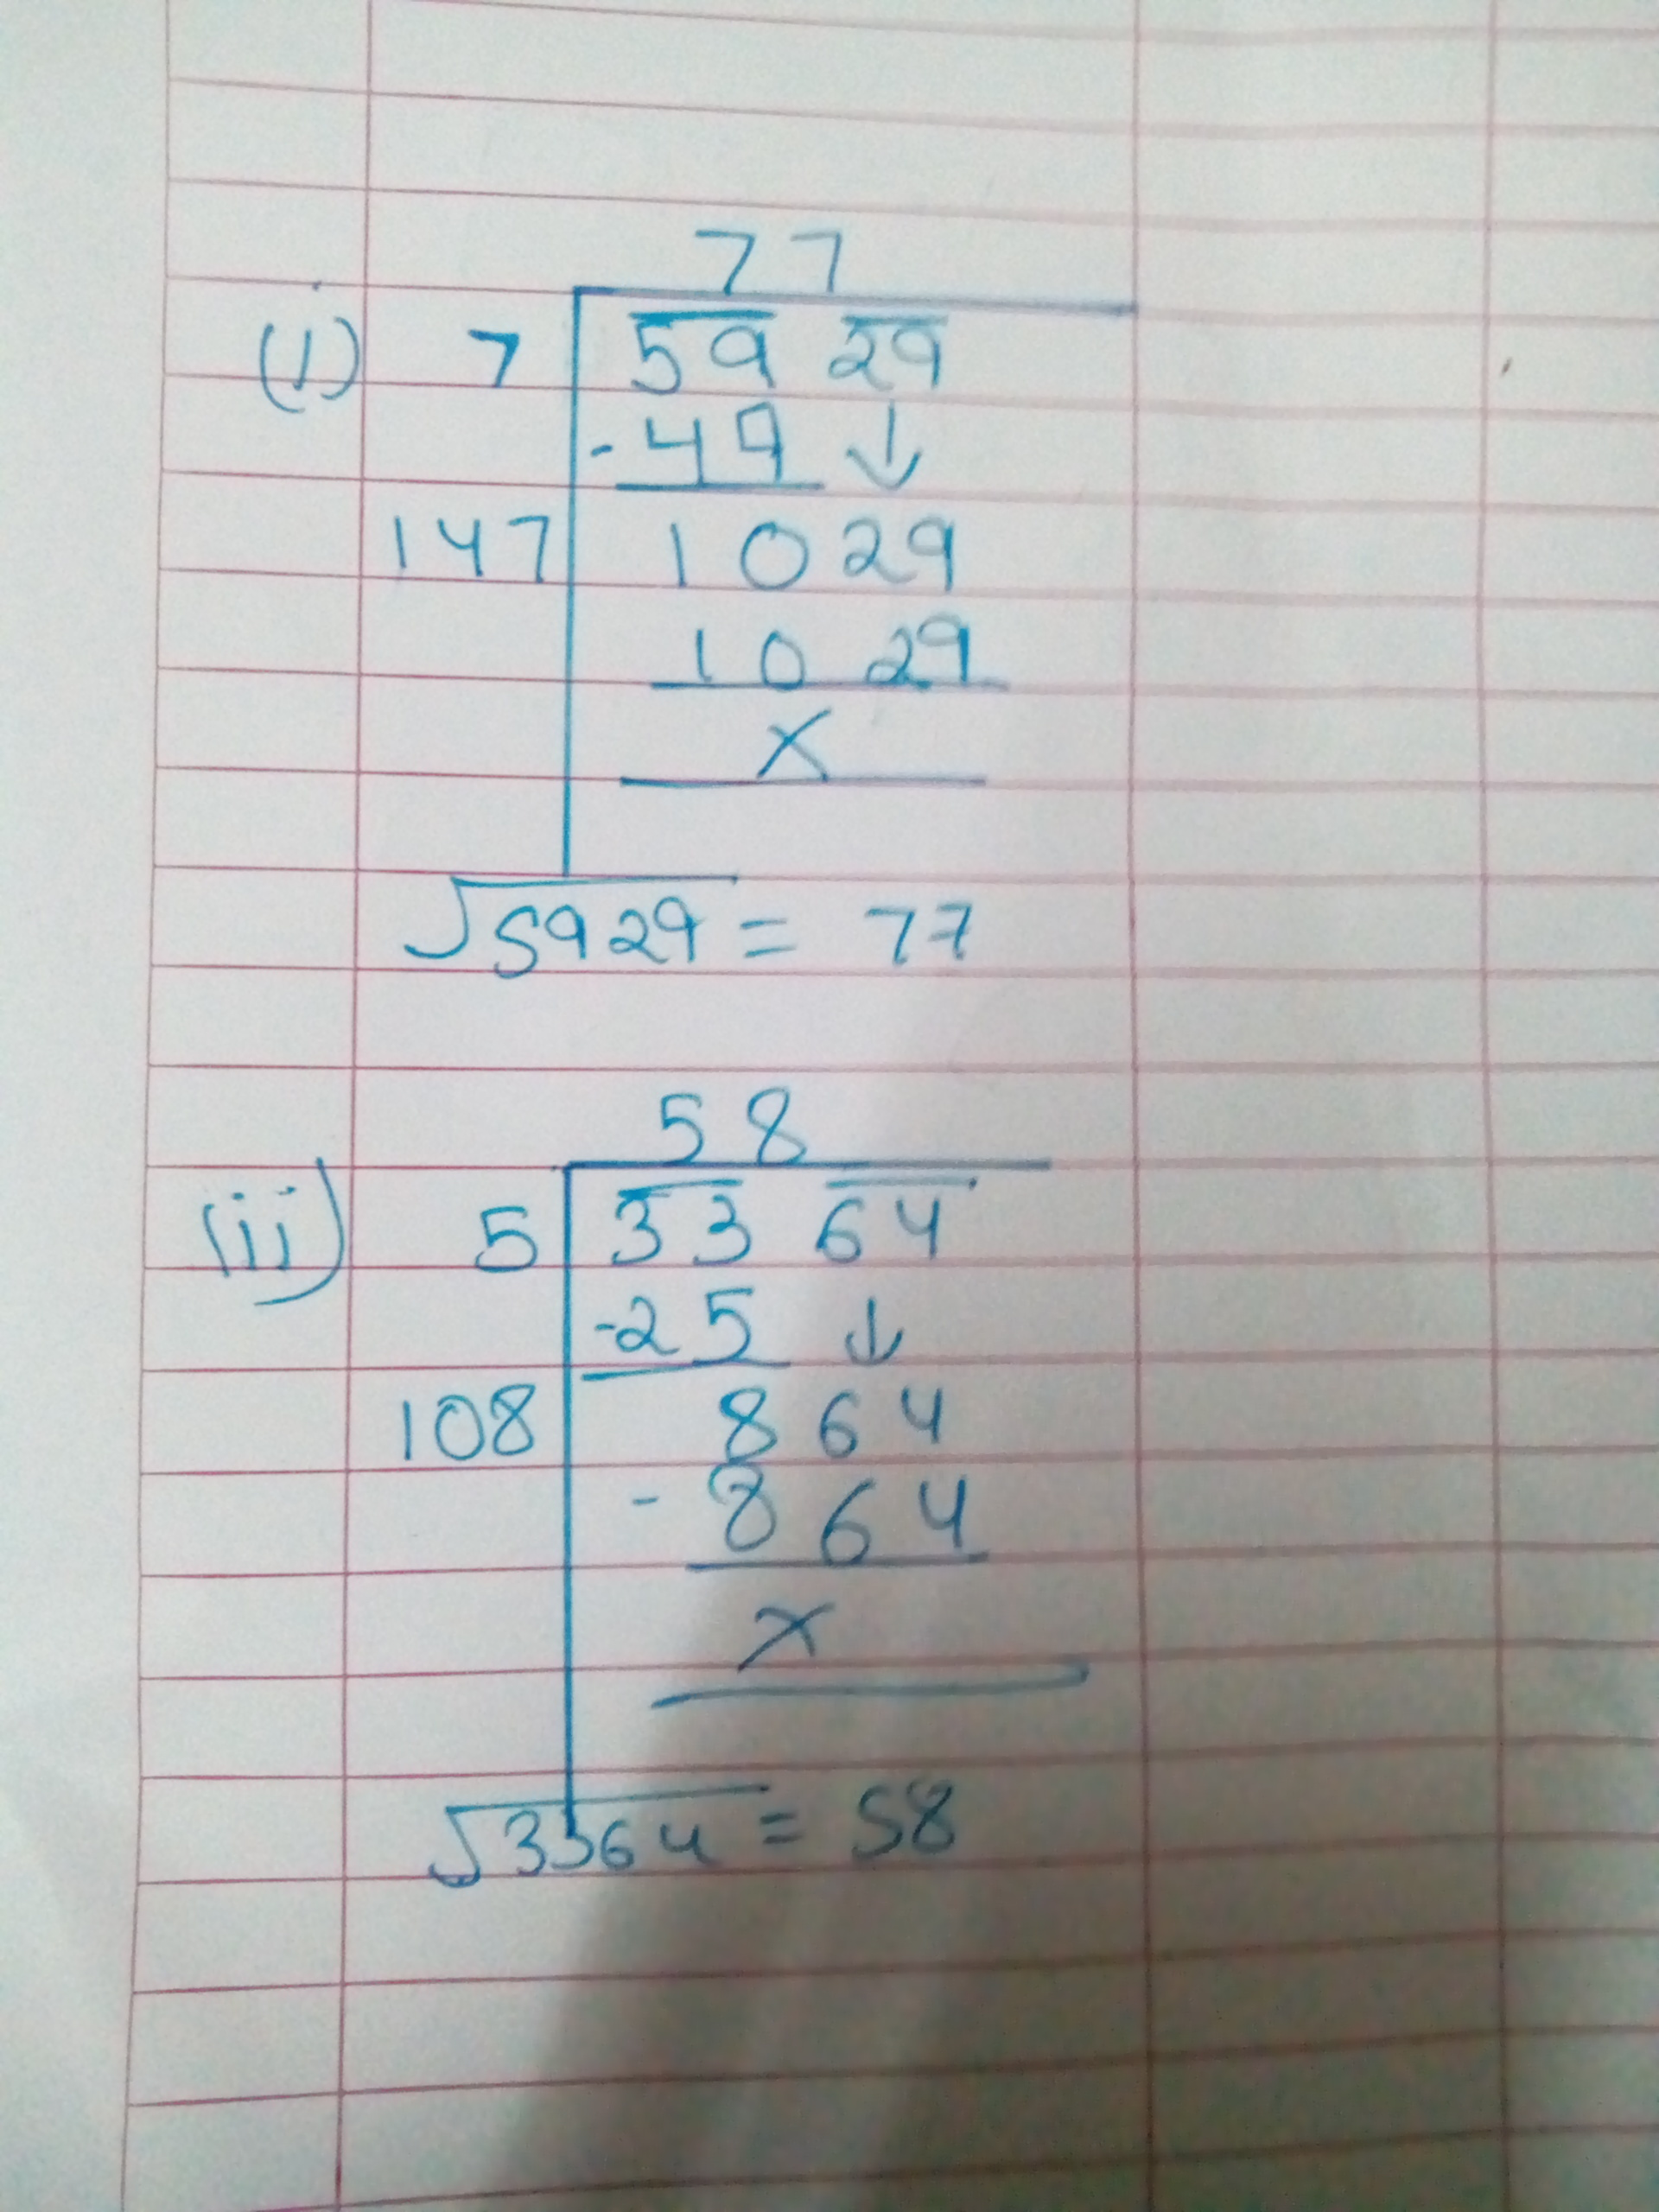 How to find the square root of 1734489 by long division